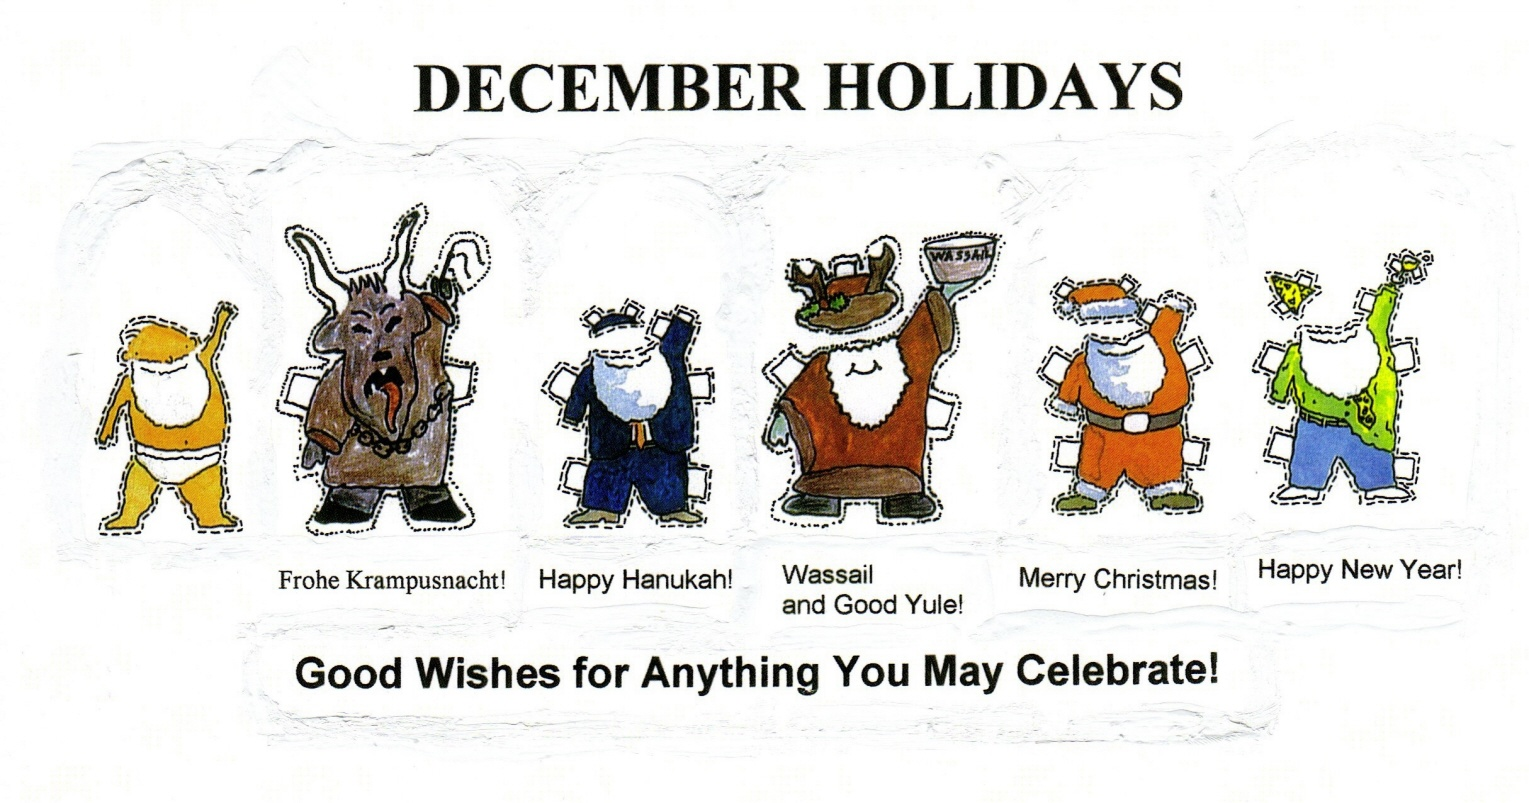 Download image December Religious Holidays Christmas PC, Android ...